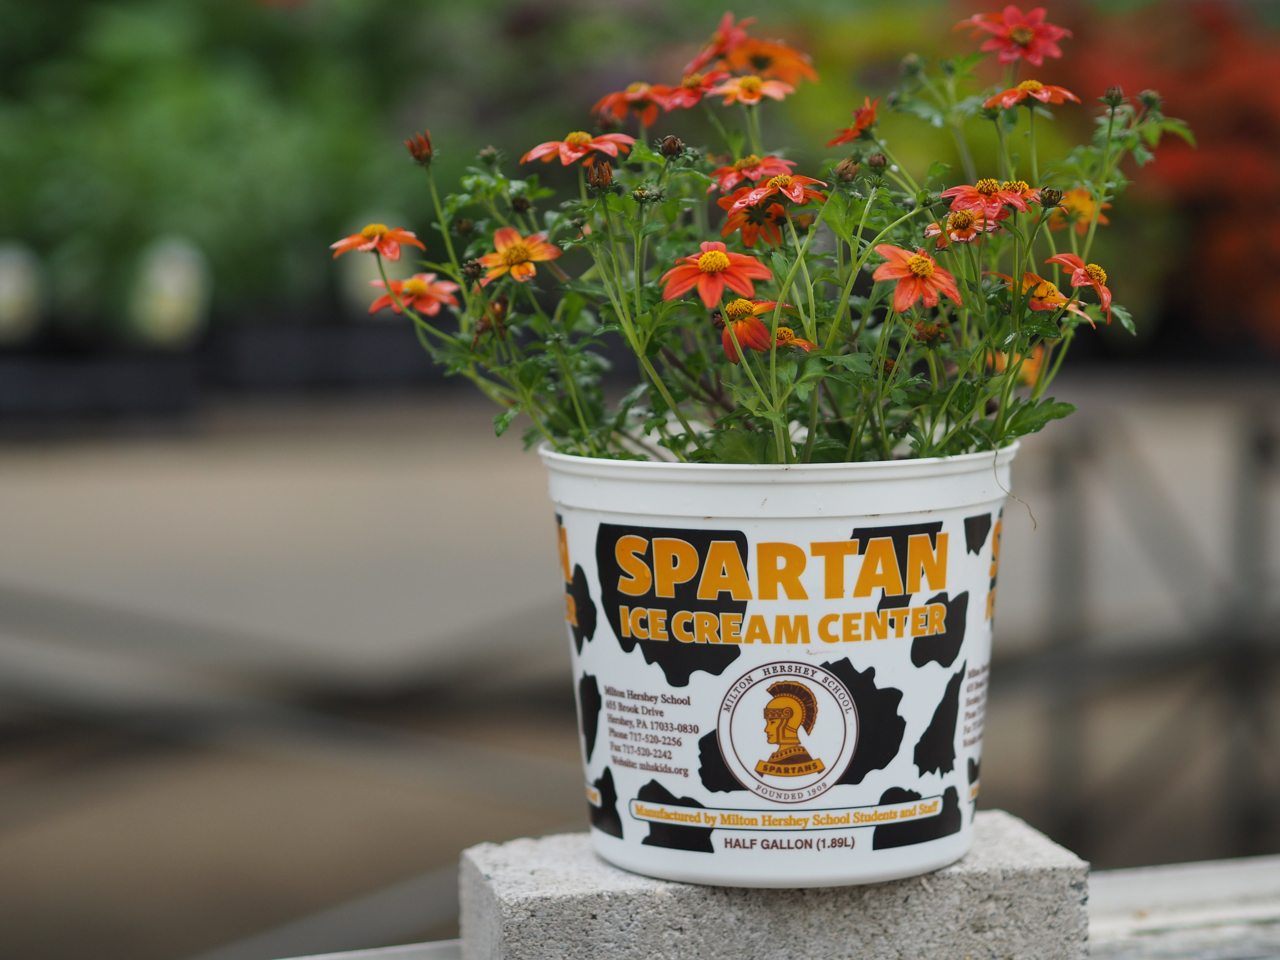 Life hack: Spartan Ice Cream containers can be modified into flower pots with the addition of a few drainage holes.